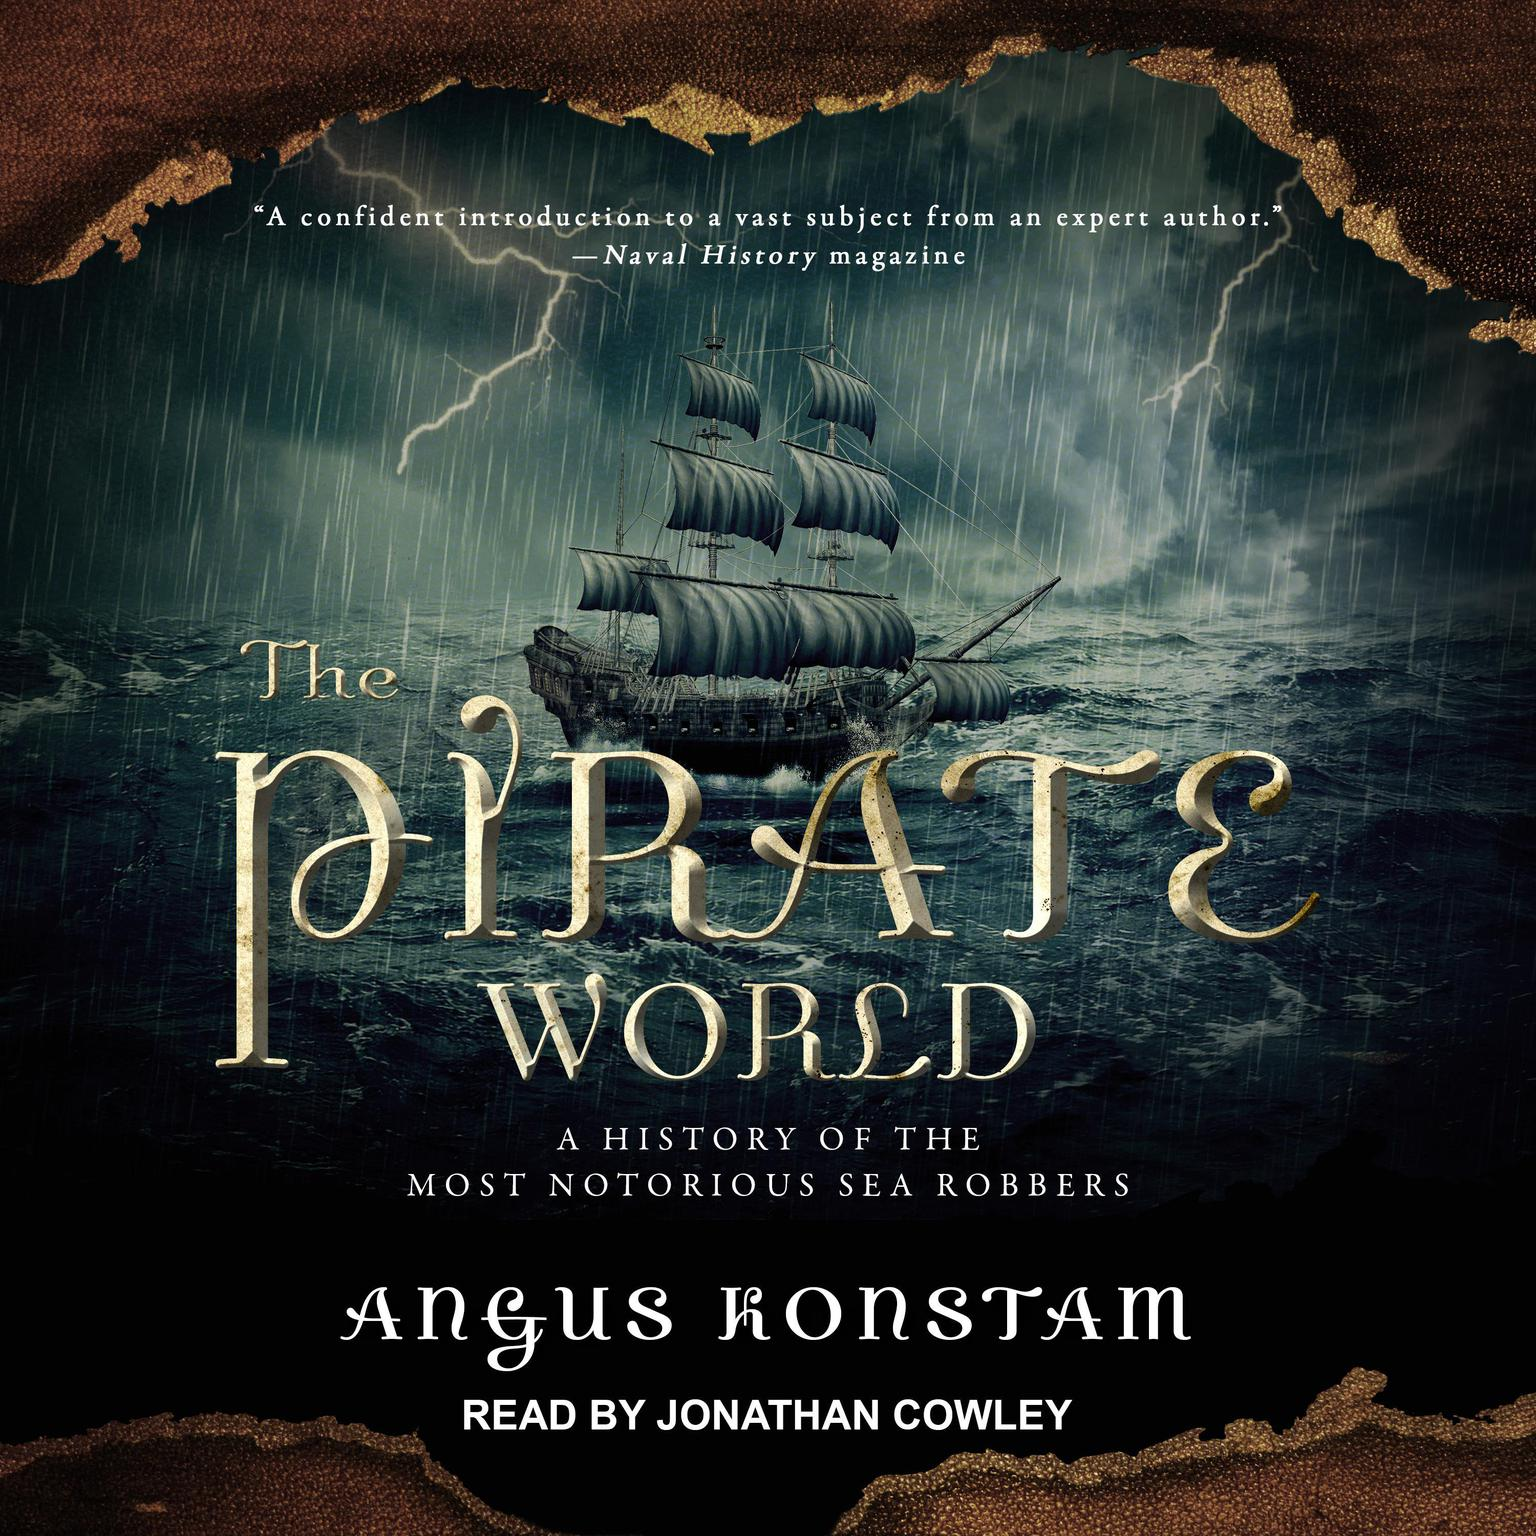 The Pirate World: A History of the Most Notorious Sea Robbers Audiobook, by Angus Konstam